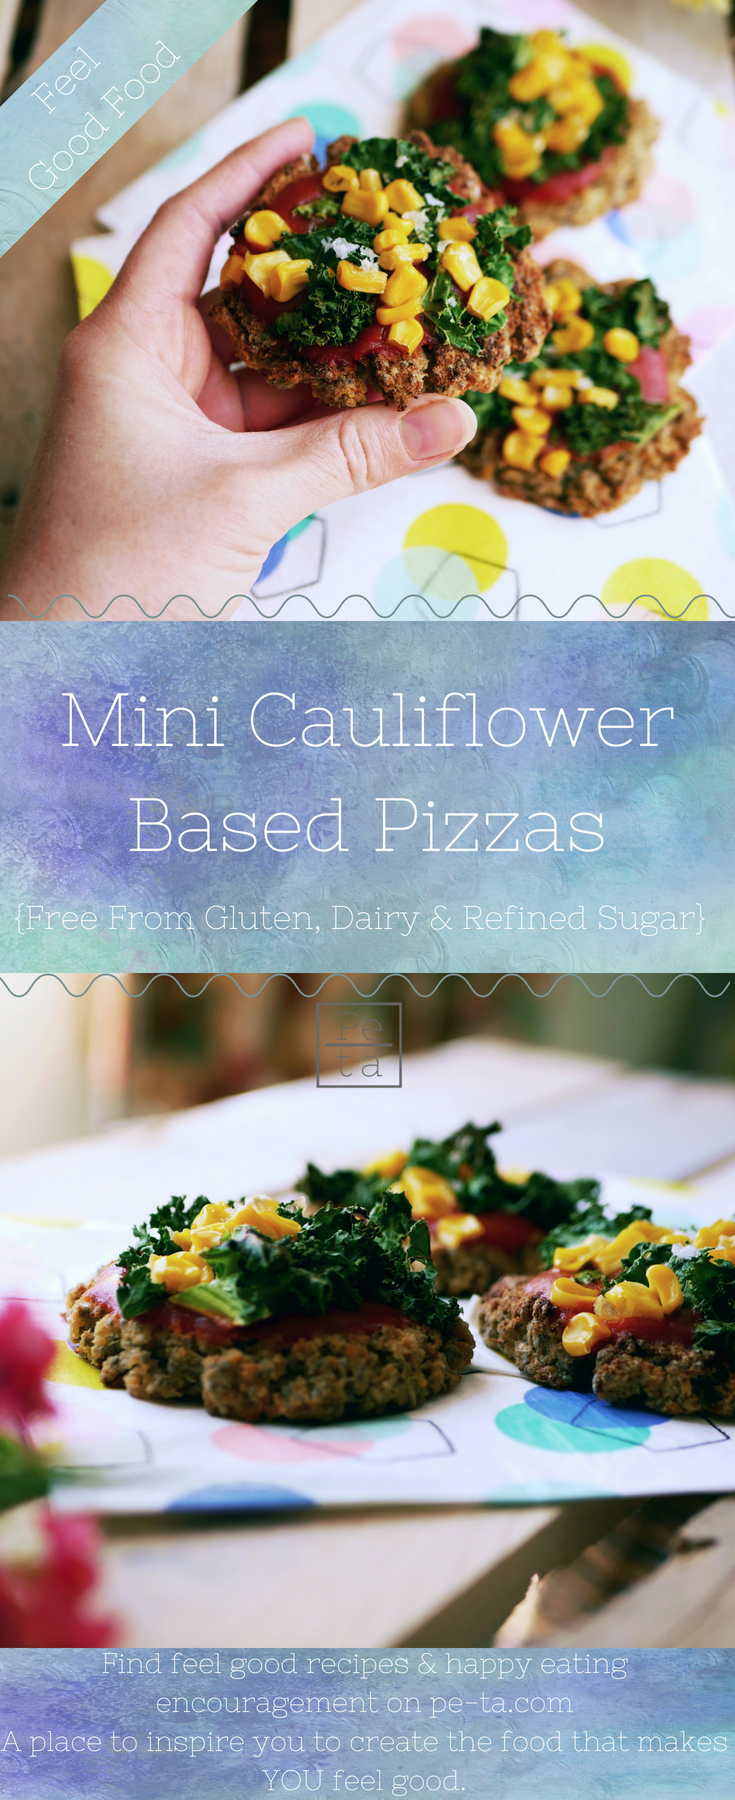 Mini Cauliflower Base Pizzas - Free From Gluten, Dairy & Refined Sugars